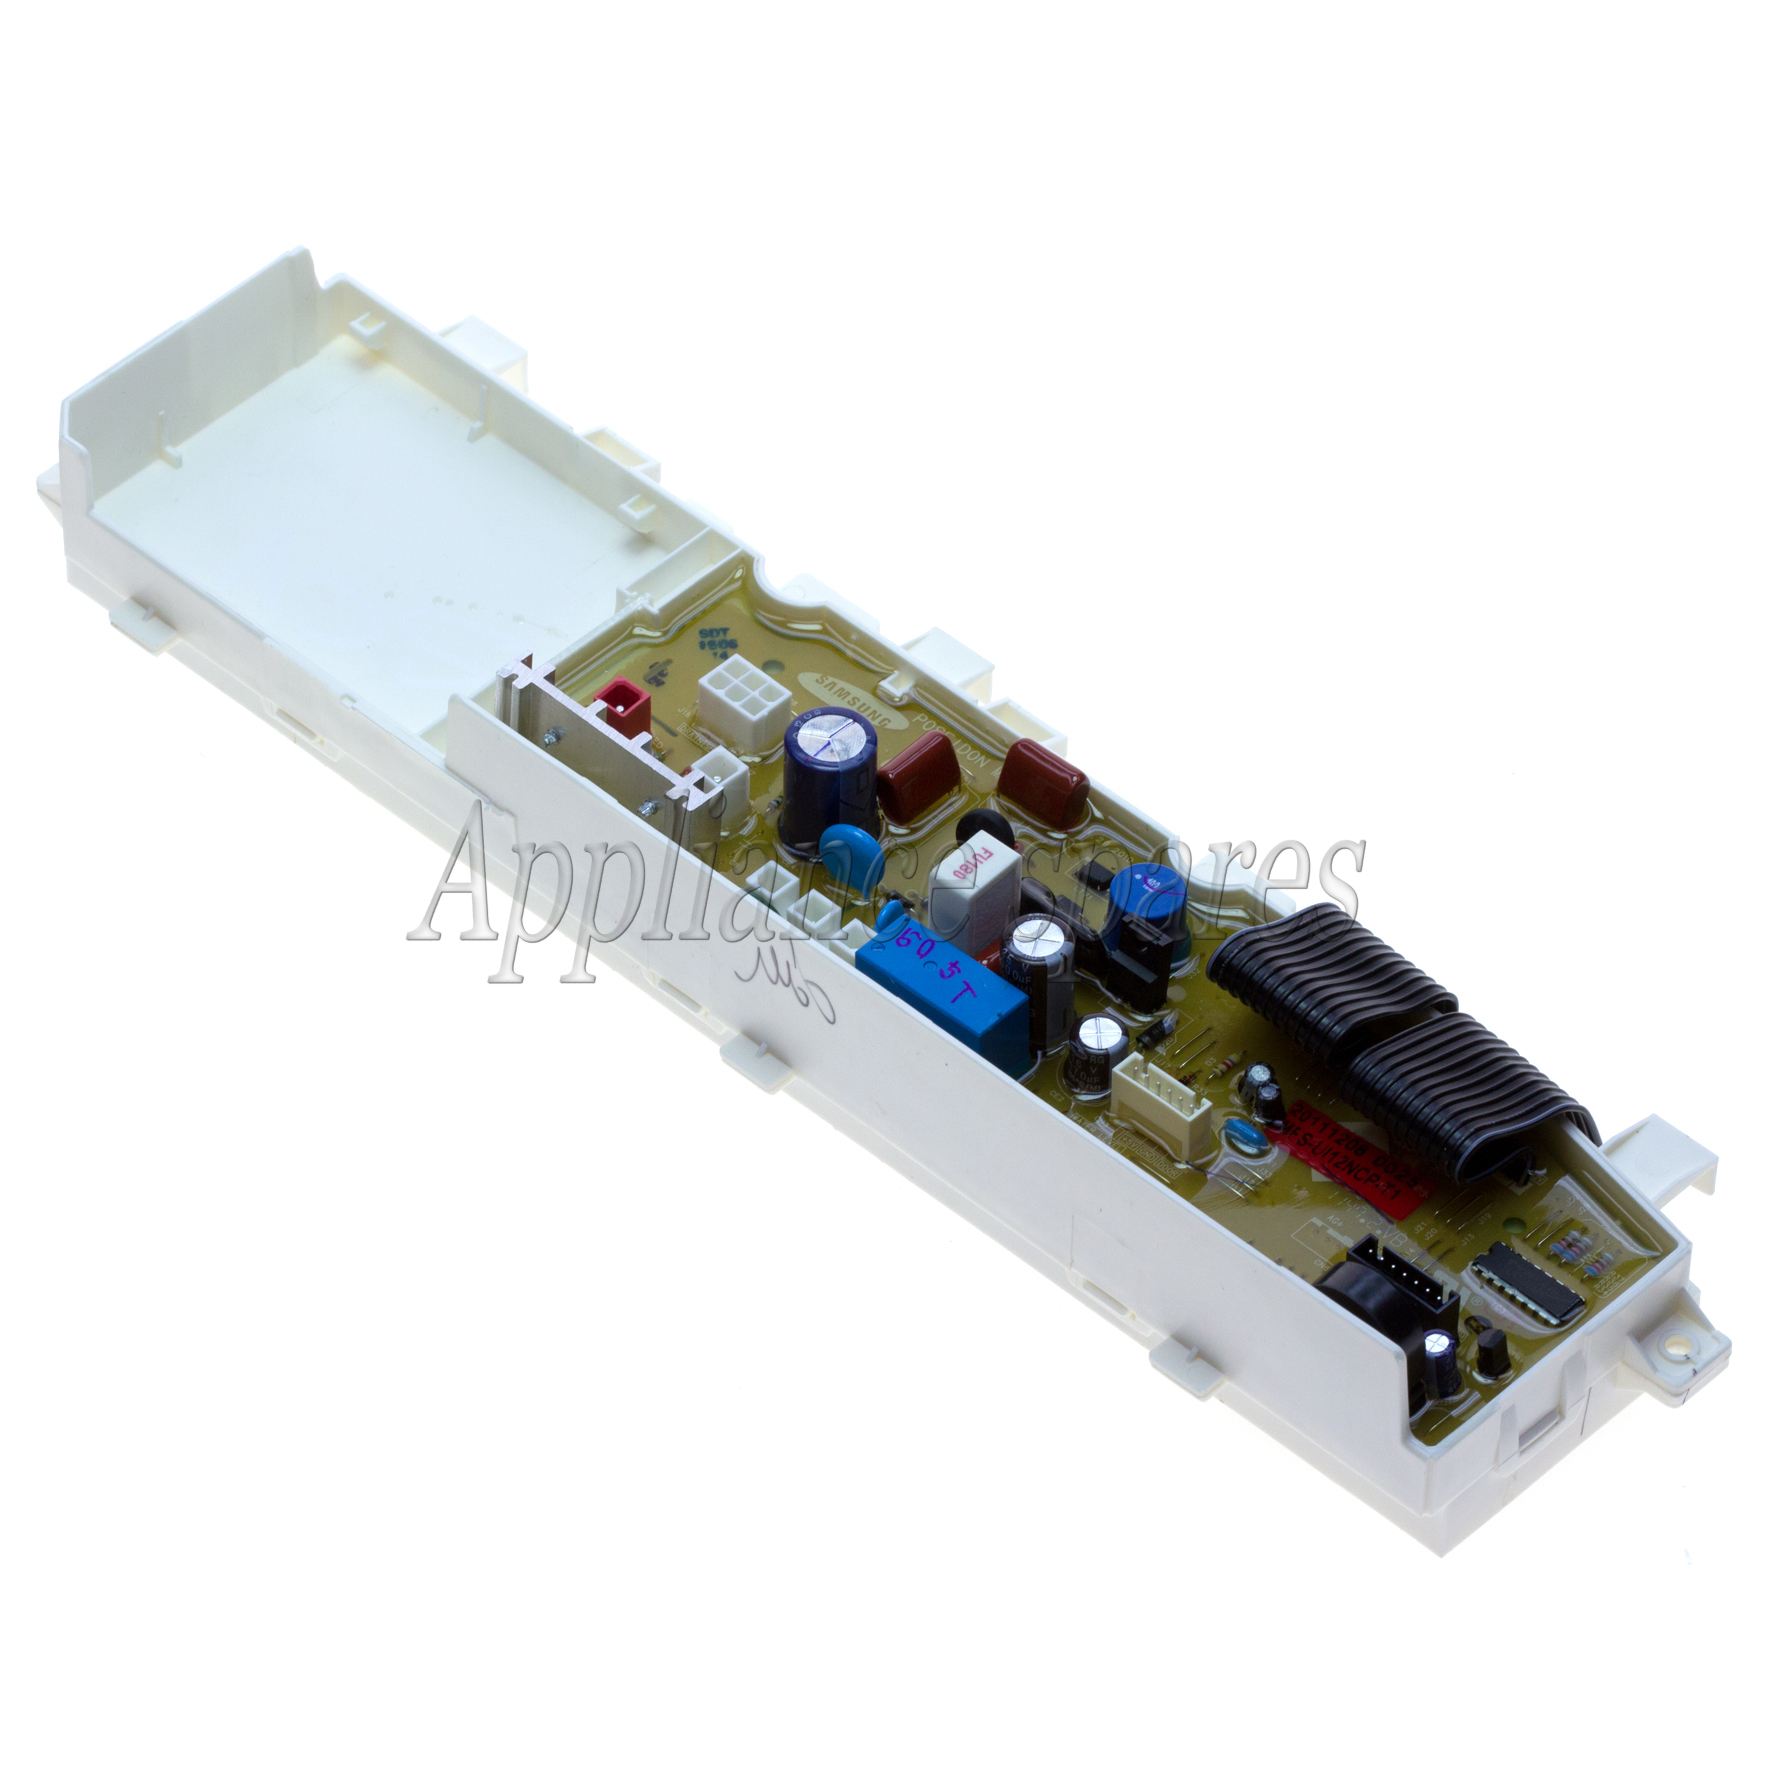 Samsung Washing Machine Spare Parts Philippines Front Loading Washer Ww75k5210yw Top Loader Pc Board Mfsui12ncp Lategan And